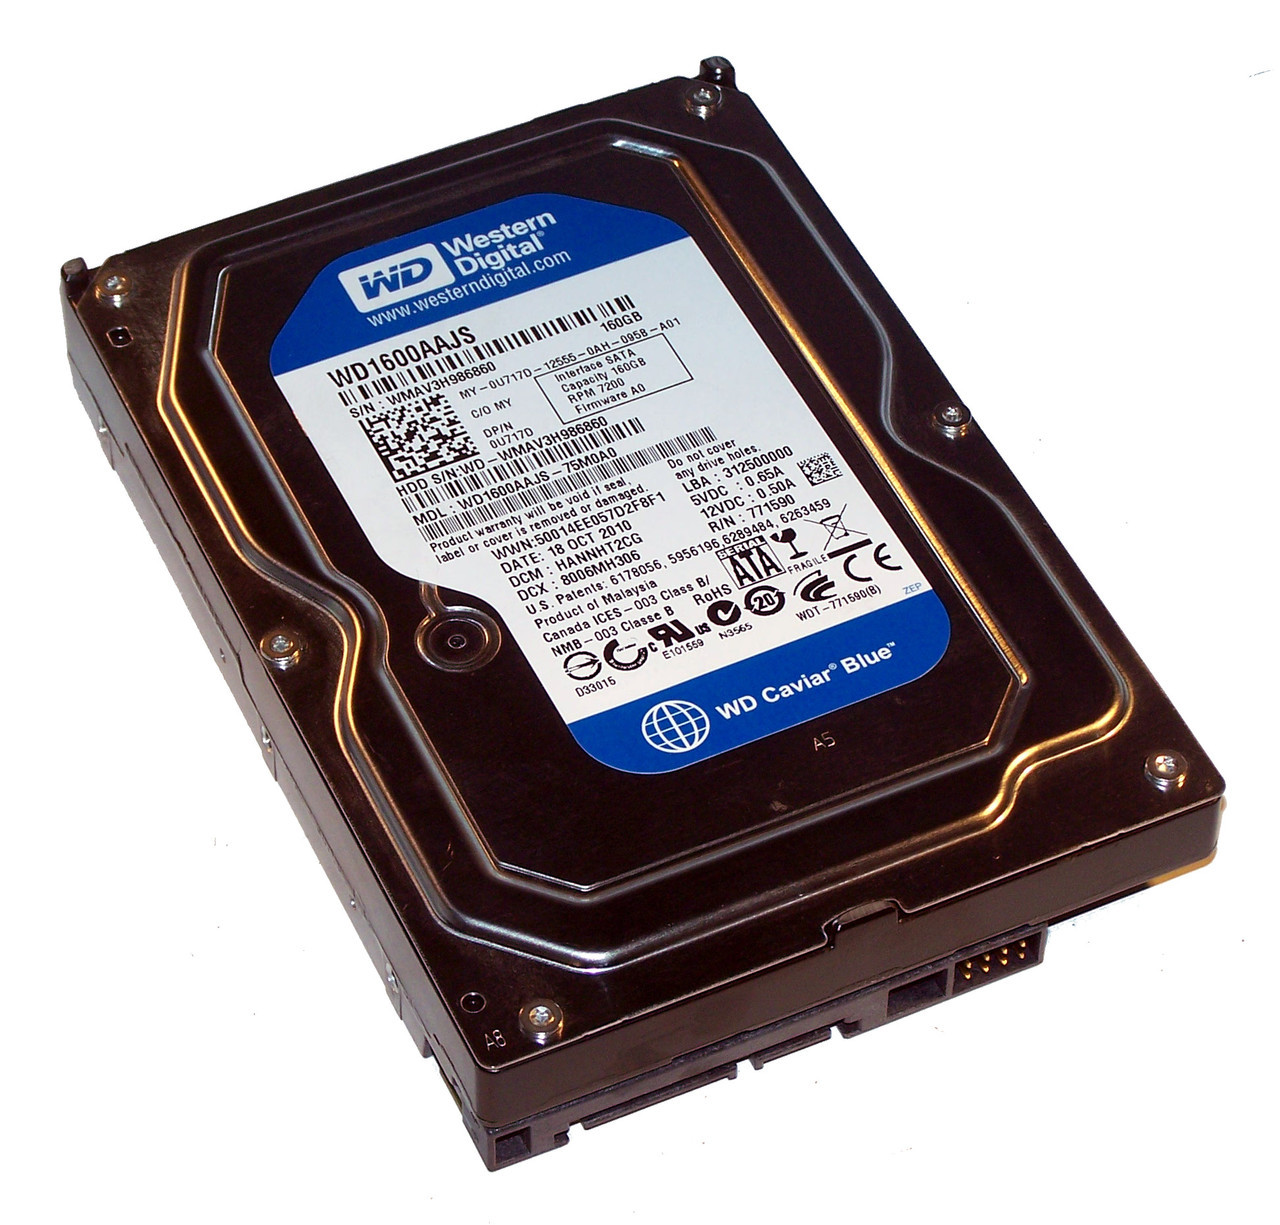 Buy internal hard drive | 160GB Western Digital SATA 3.5 Desktop Hard Drive